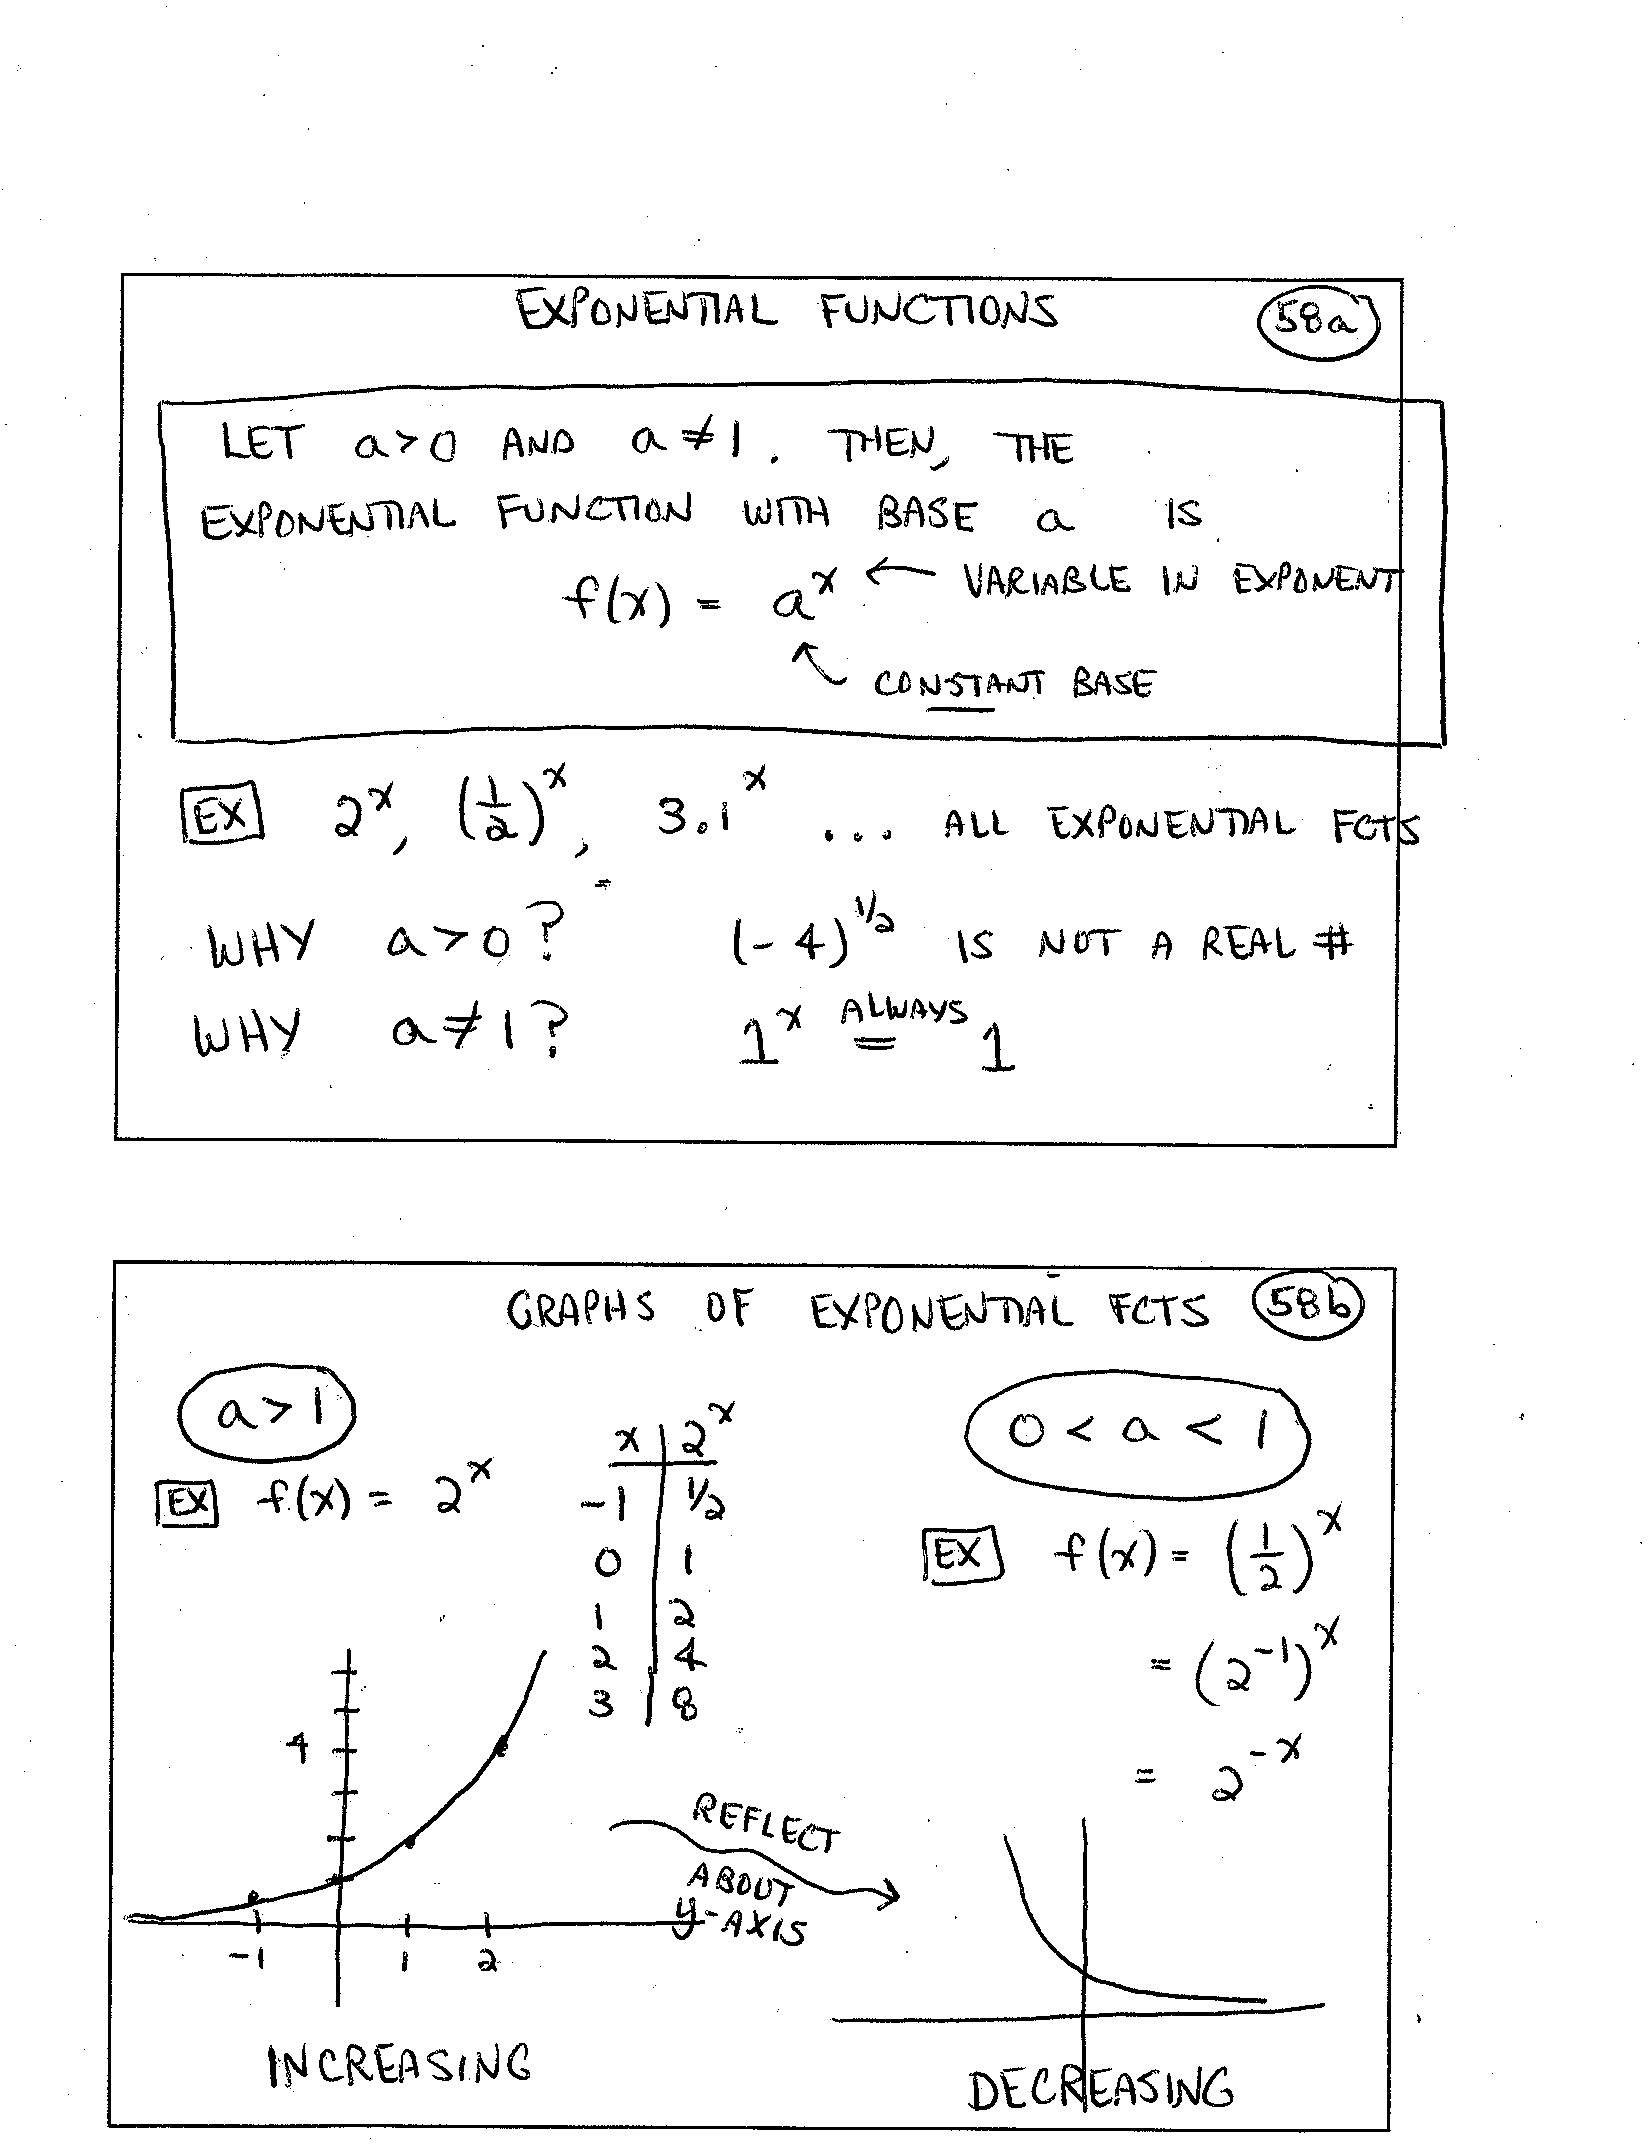 ... 131 daily syllabus : Exponential Functions Word Problems Worksheet Pdf